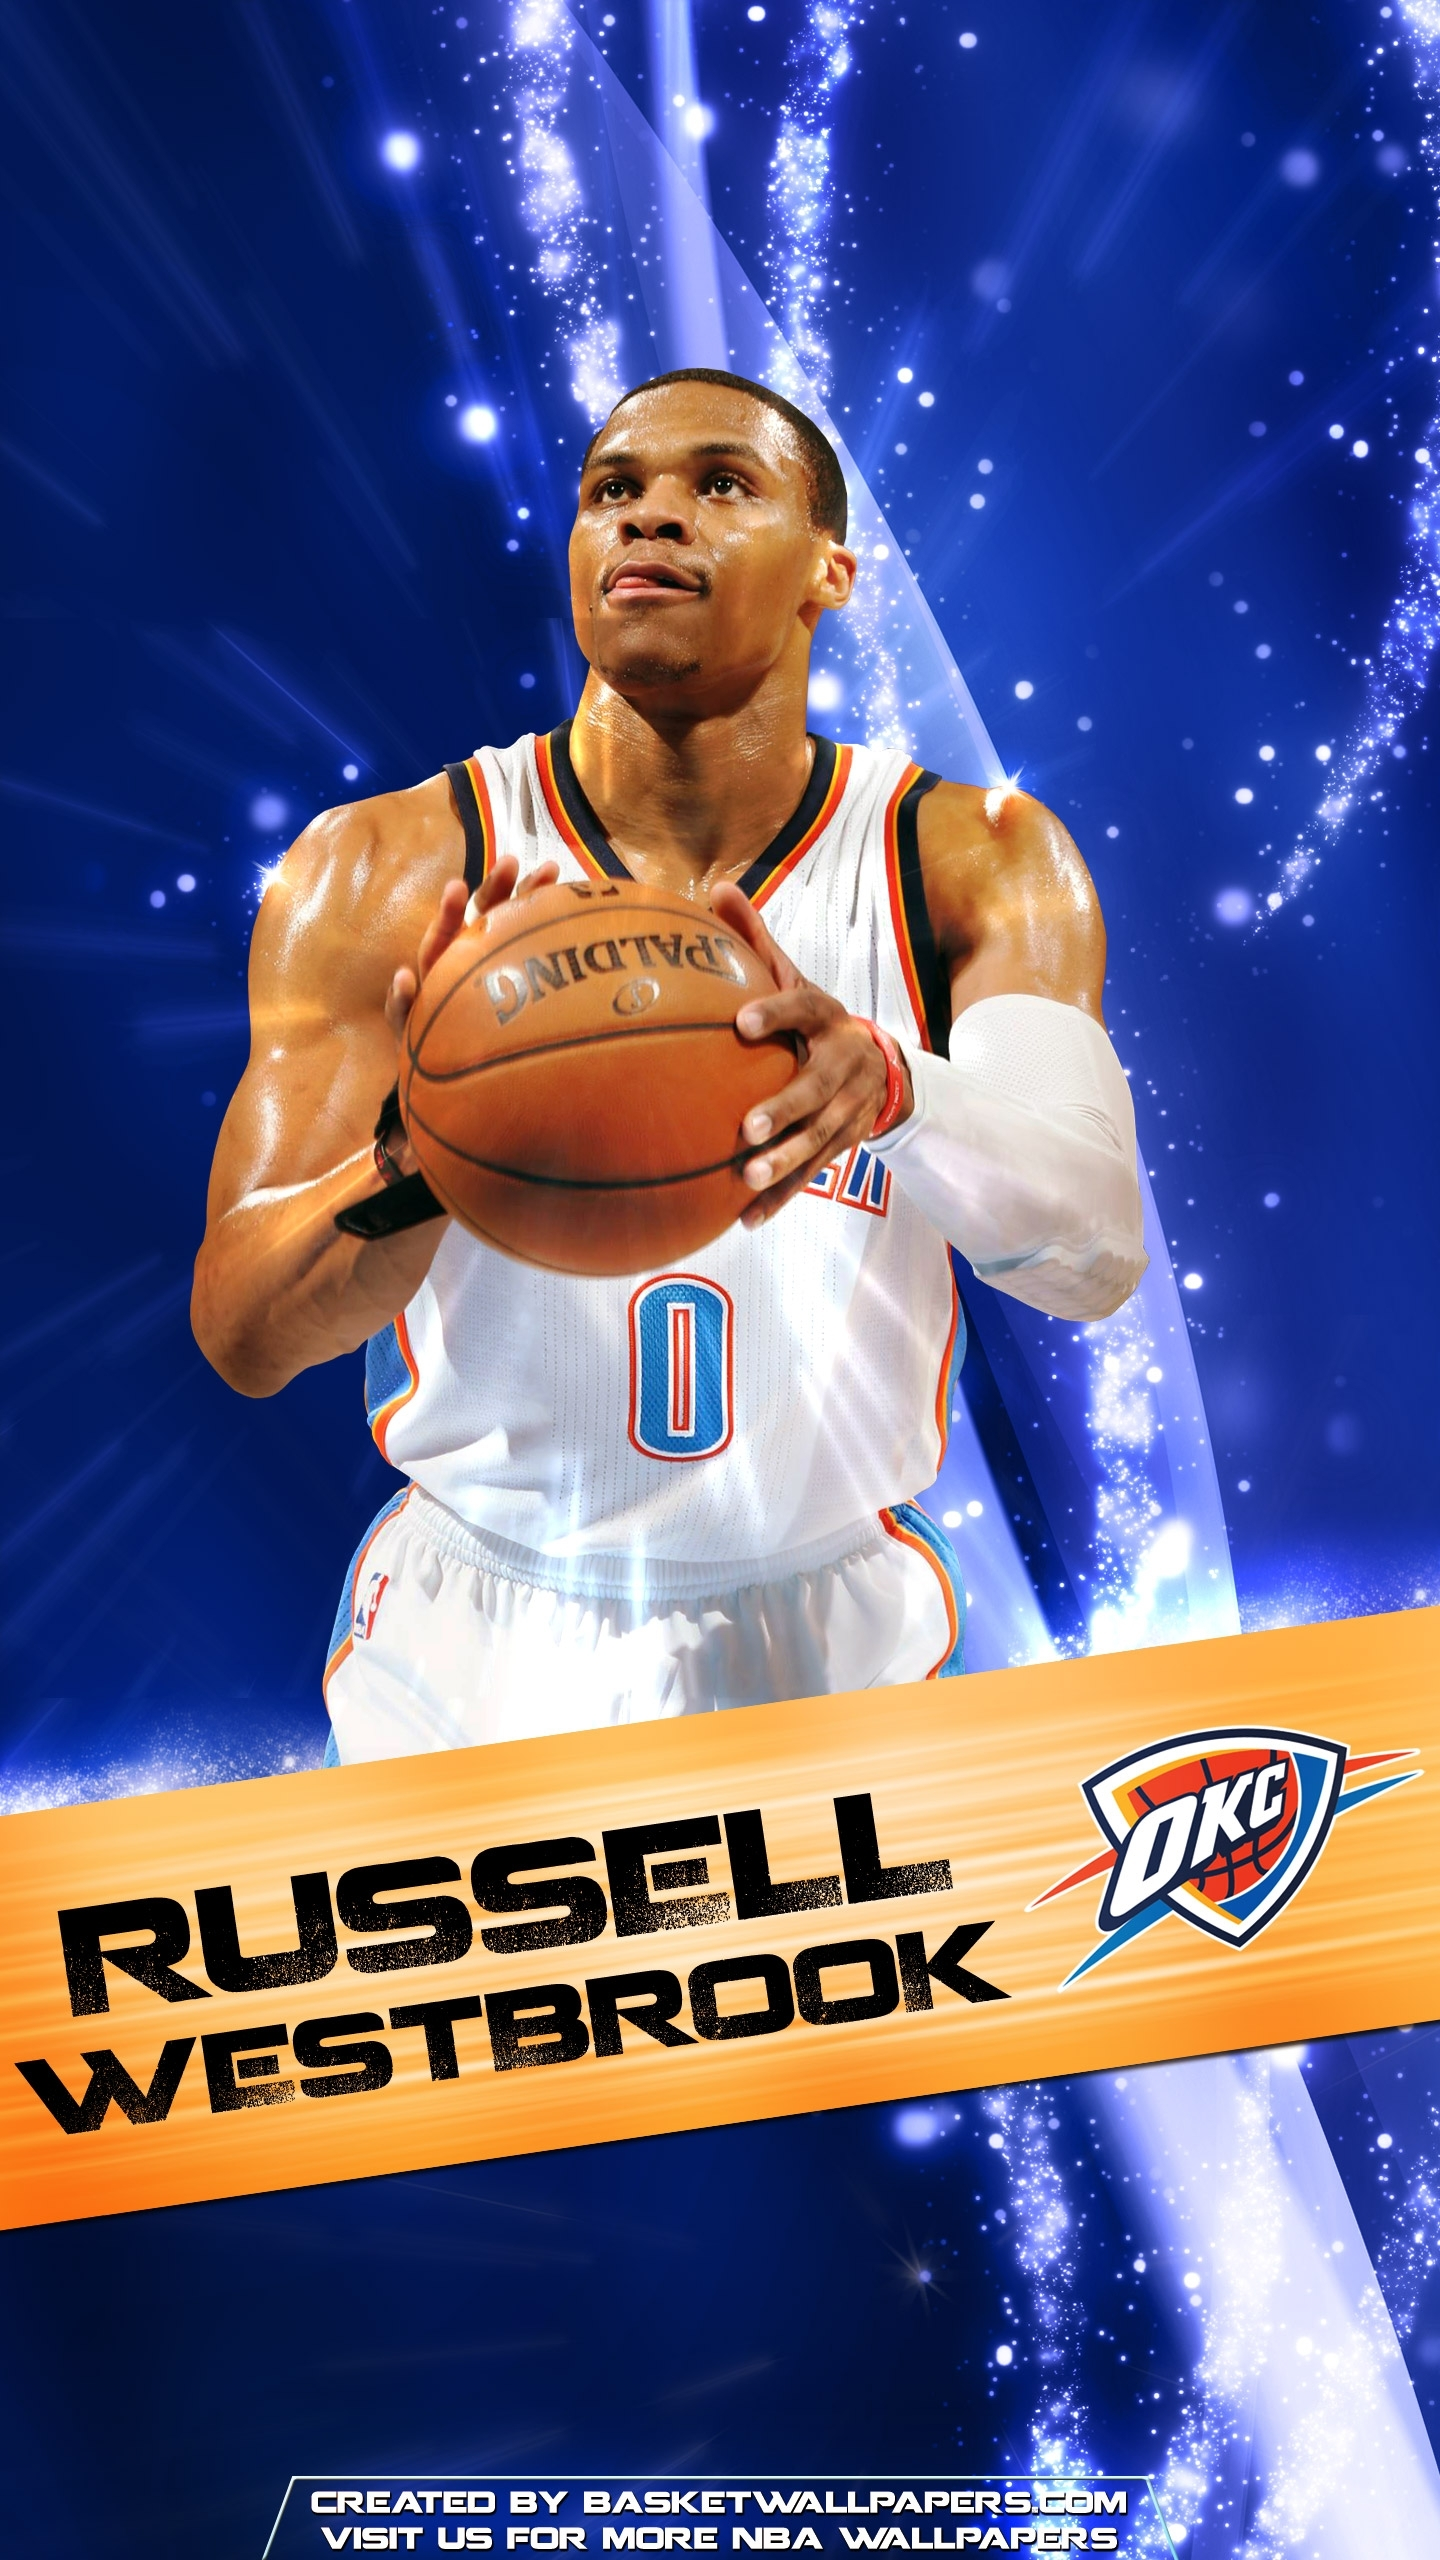 10 Most Popular Russell Westbrook Wallpaper Iphone FULL HD 1920x1080